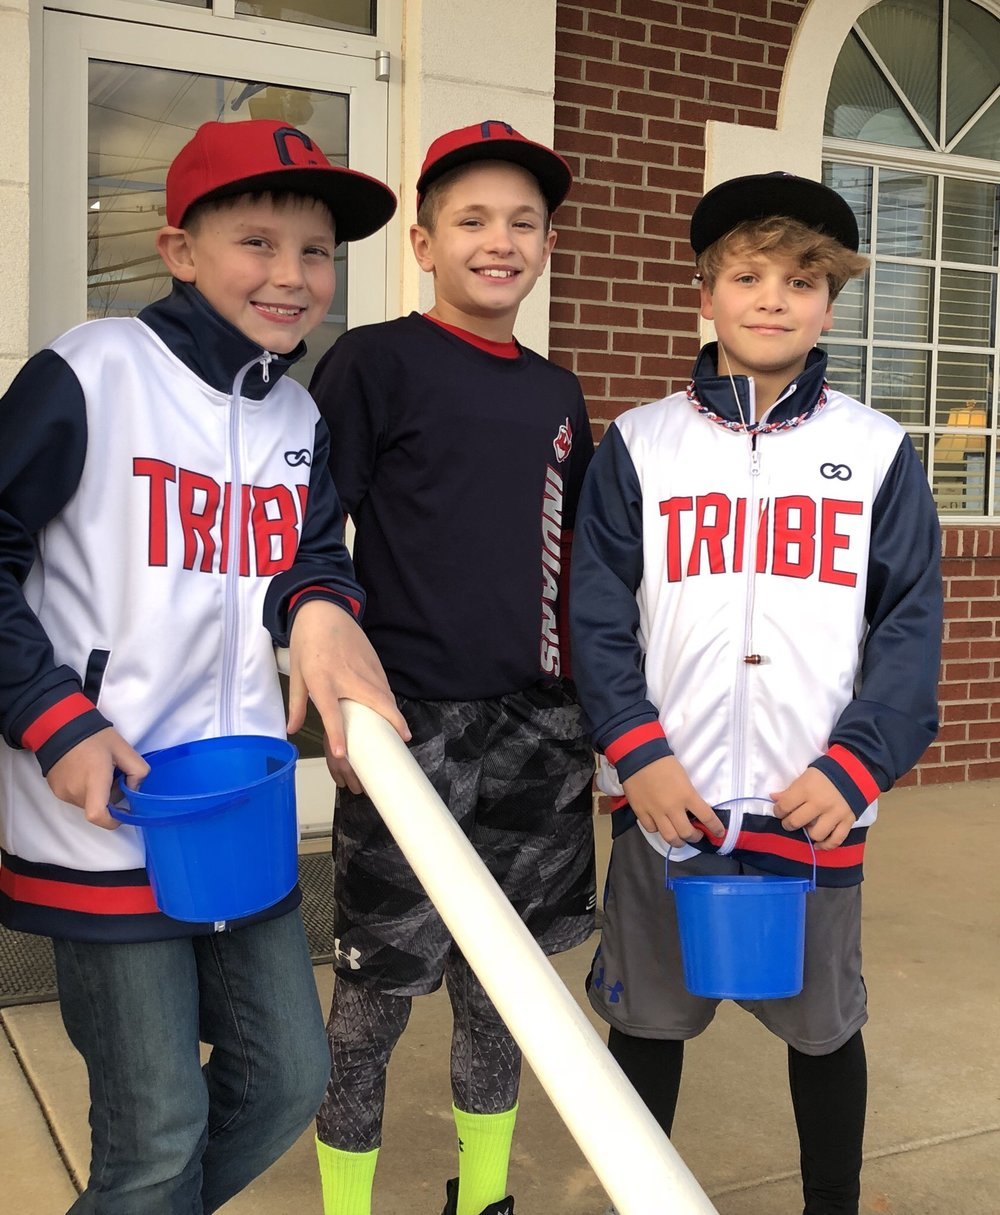 TRIBE White Black Red Baseball Uniforms, Jerseys Jacket, and Shorts